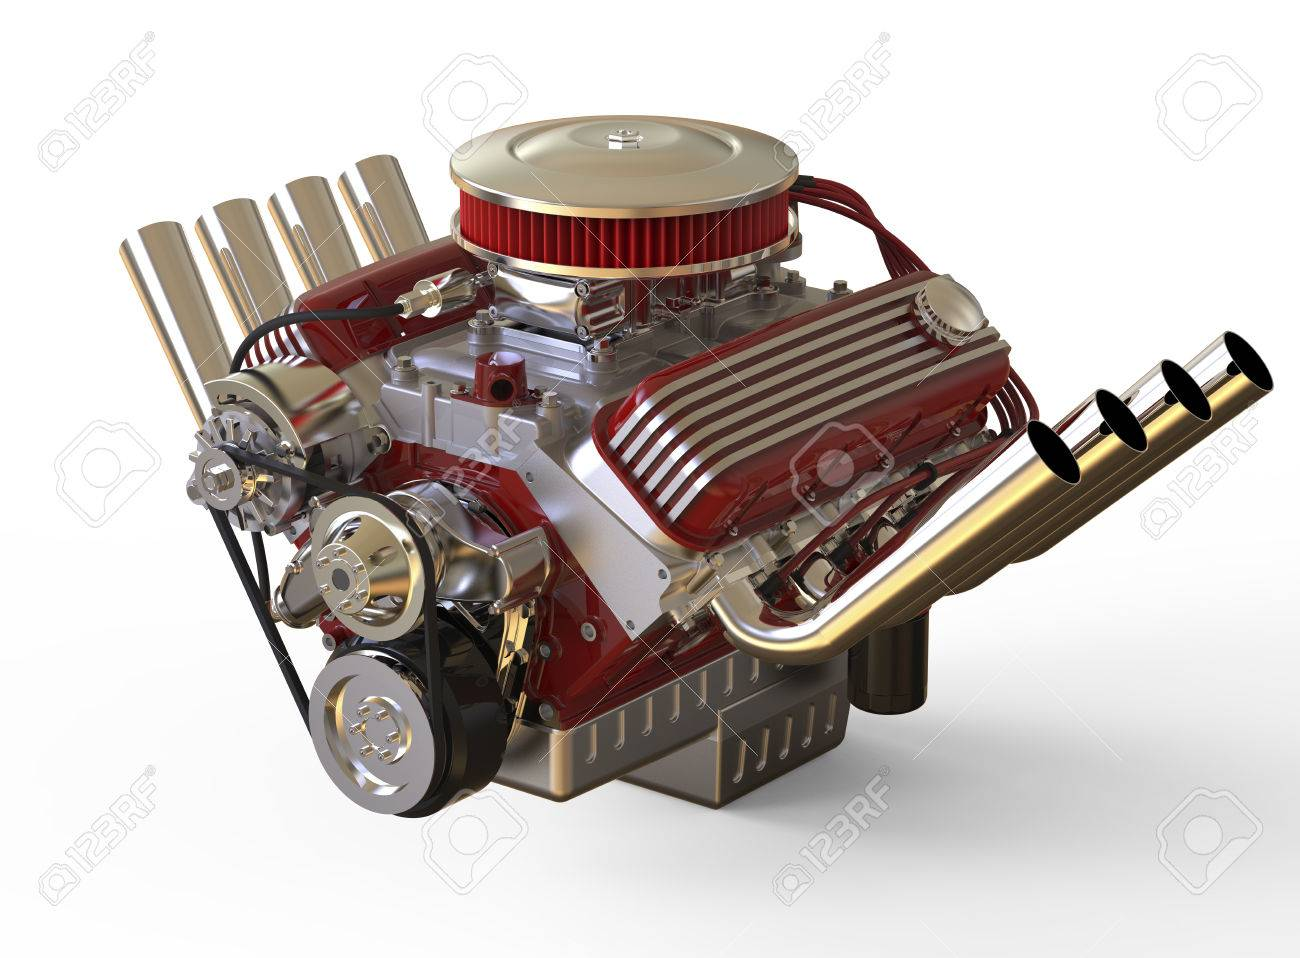 Hot rod V8 Engine Isolated on White. 3D render Stock Photo - 65945523